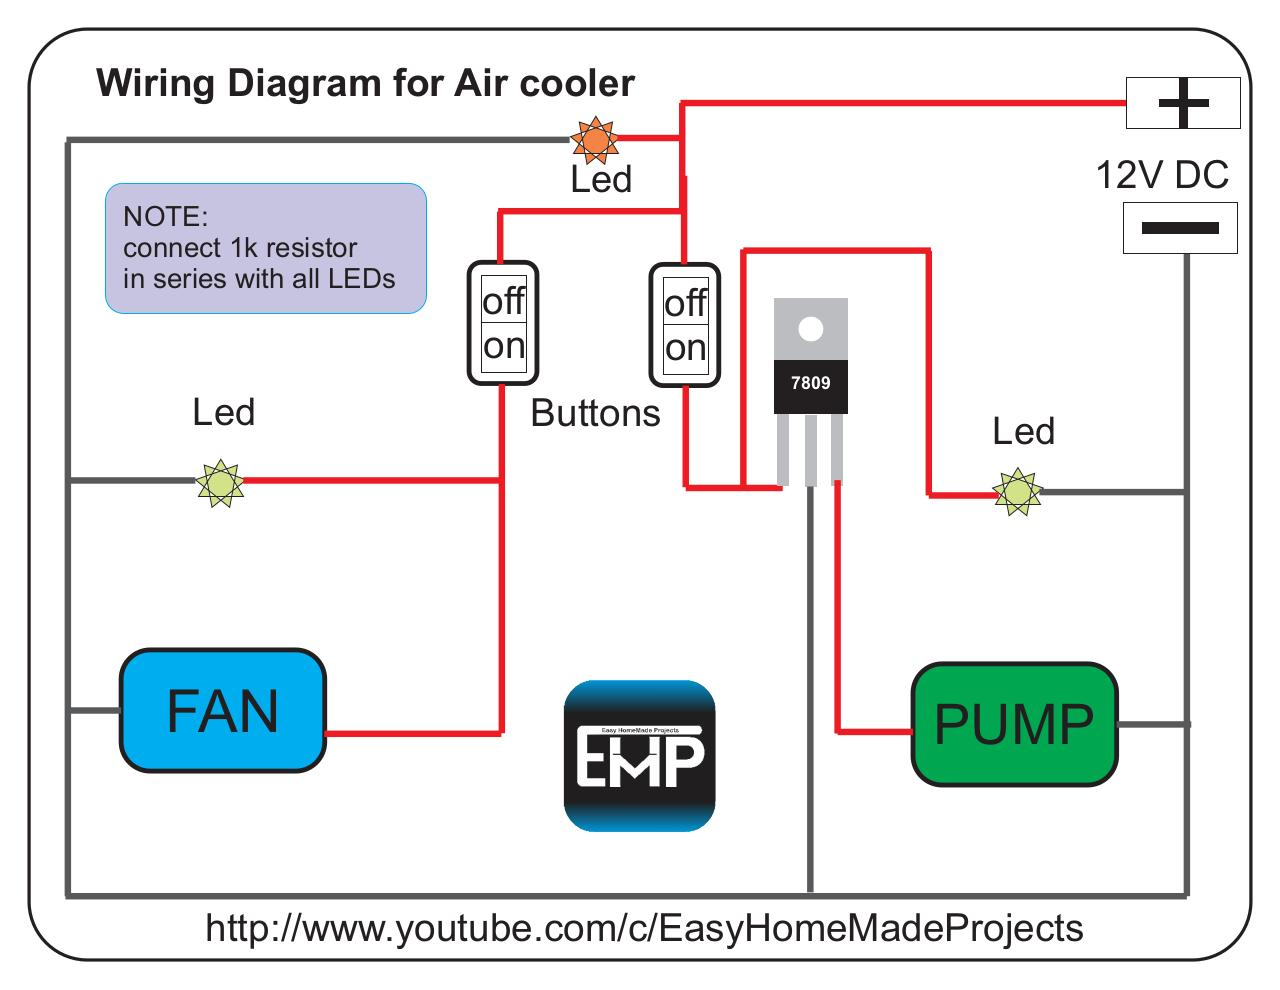 wiring cdr wiring diagram for mini air cooler pdf pdf archive wiring diagram for air cooler 12v dc led note connect 1k resistor in series all leds off on off on 7809 led fan buttons led pump